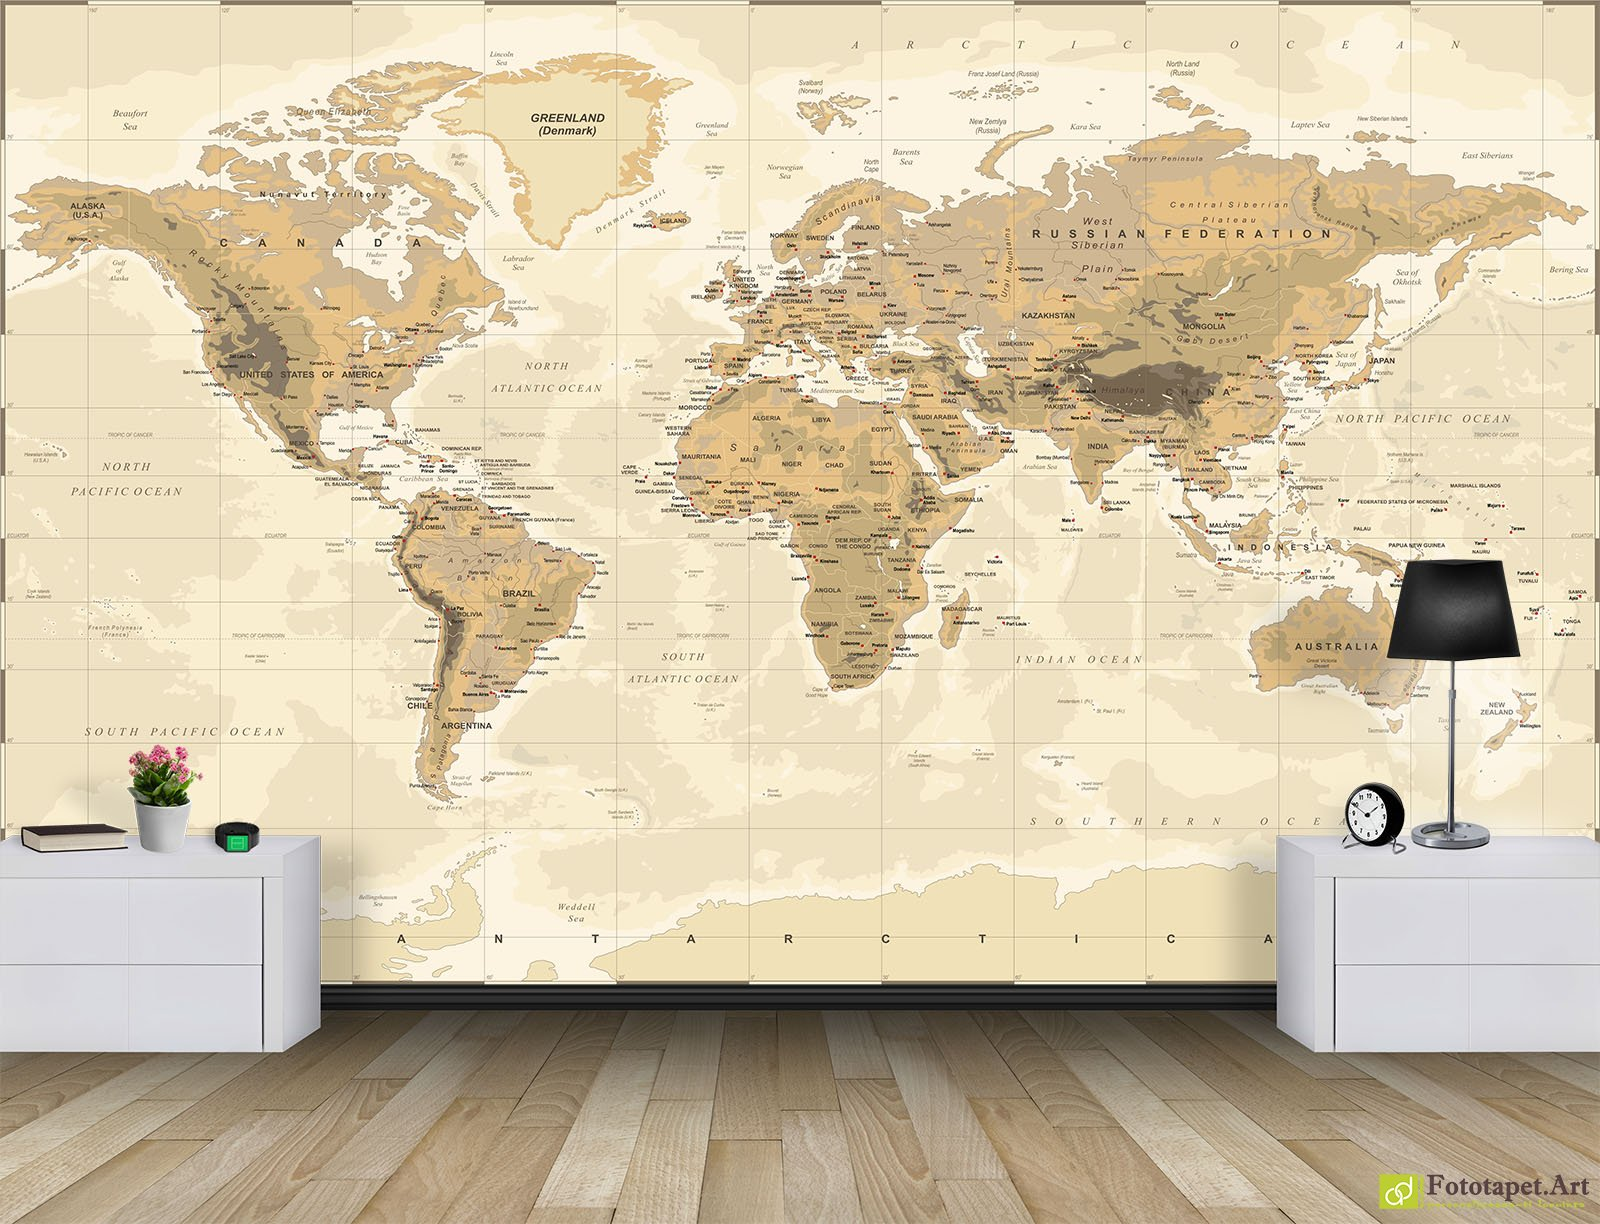 Retro wallpaper vintage wall murals world map5 fototapet retro wallpaper vintage wall murals world map5 amipublicfo Images